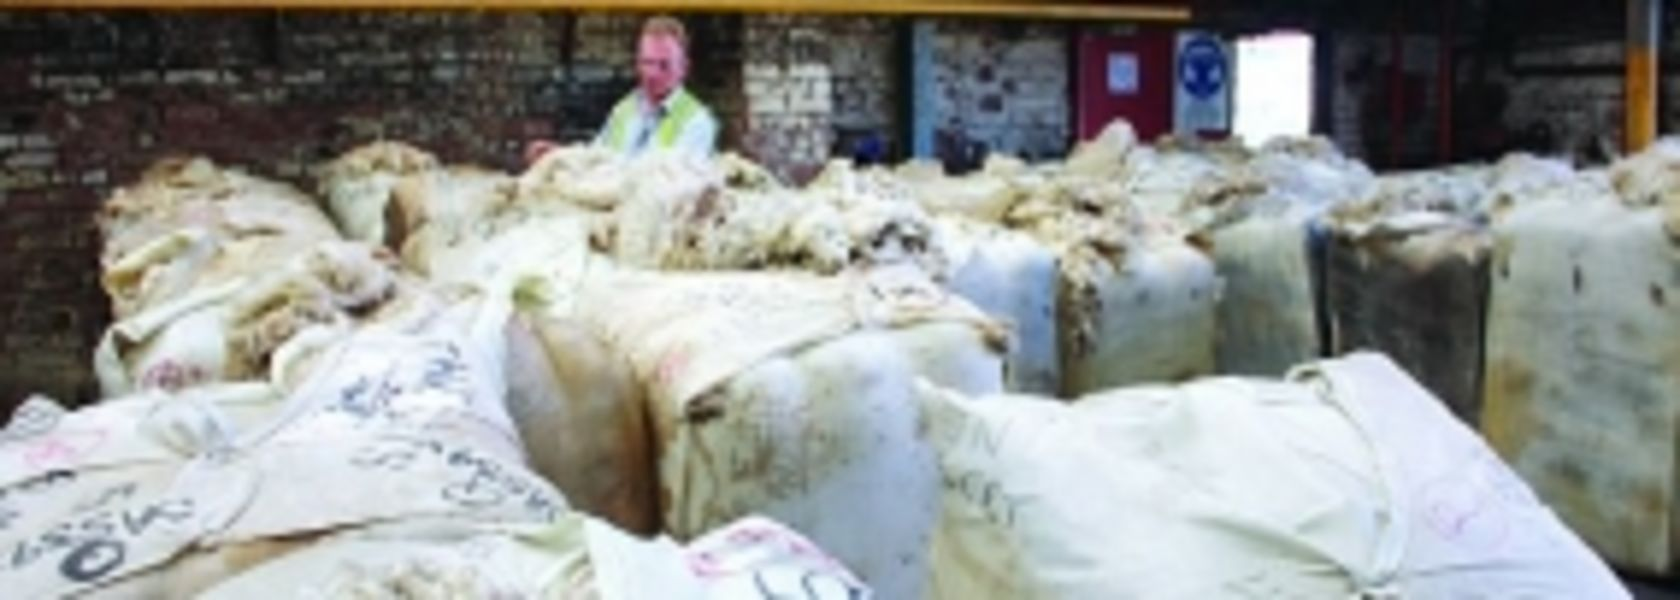 What is your wool really worth? And why?